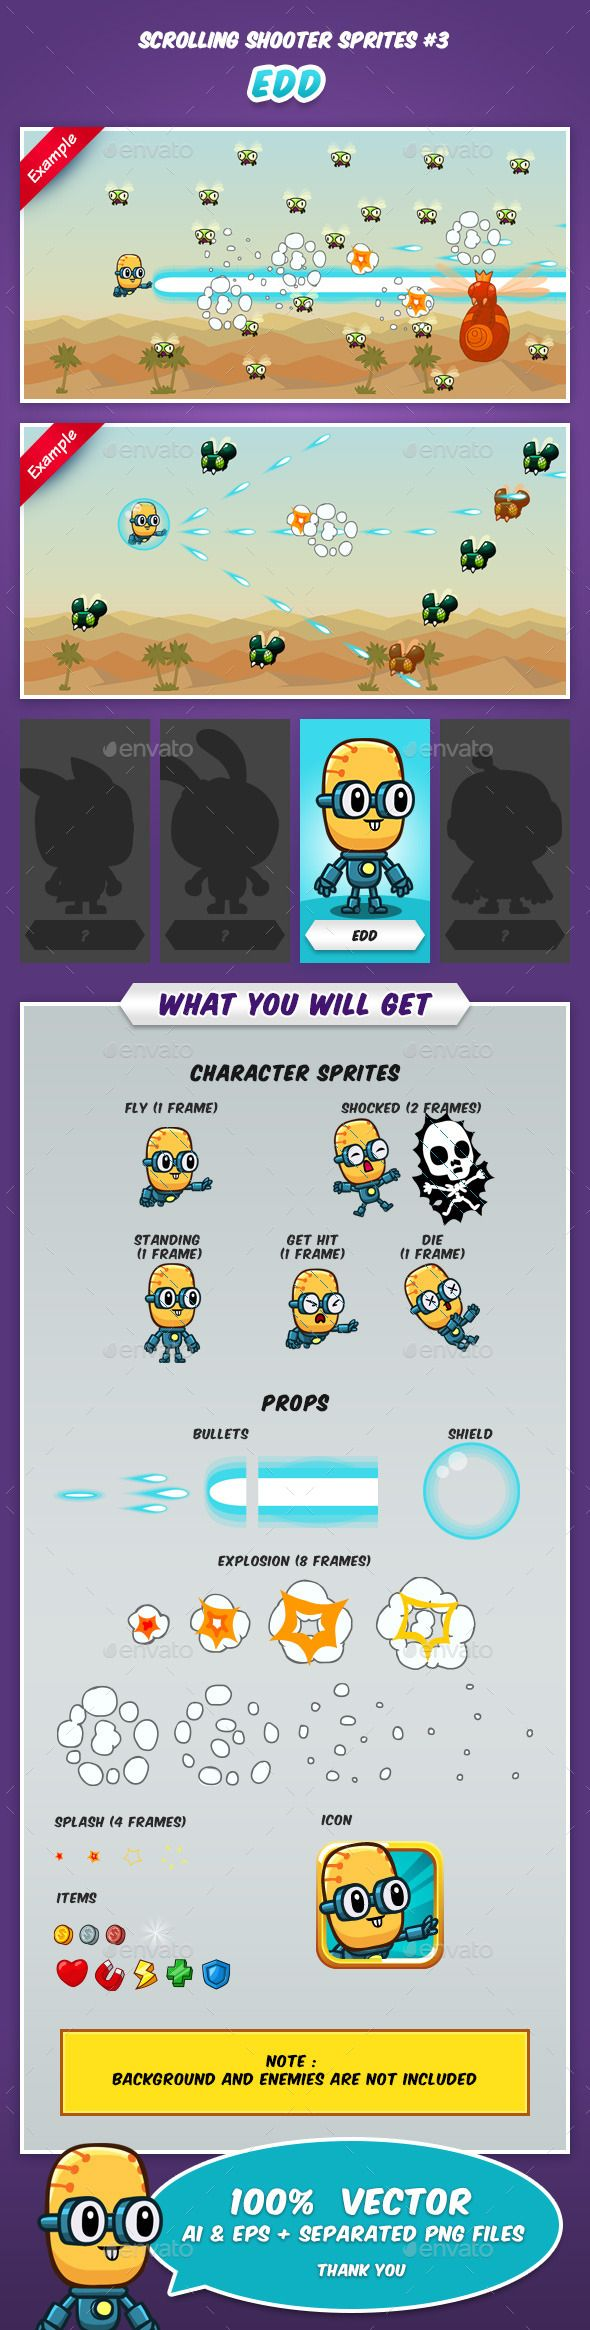 Scrolling Shooter Game Sprites #3 - Sprites Game Assets | DOWNLOAD: https://graphicriver.net/item/scrolling-shooter-game-sprites-3/9016138?ref=sinzo